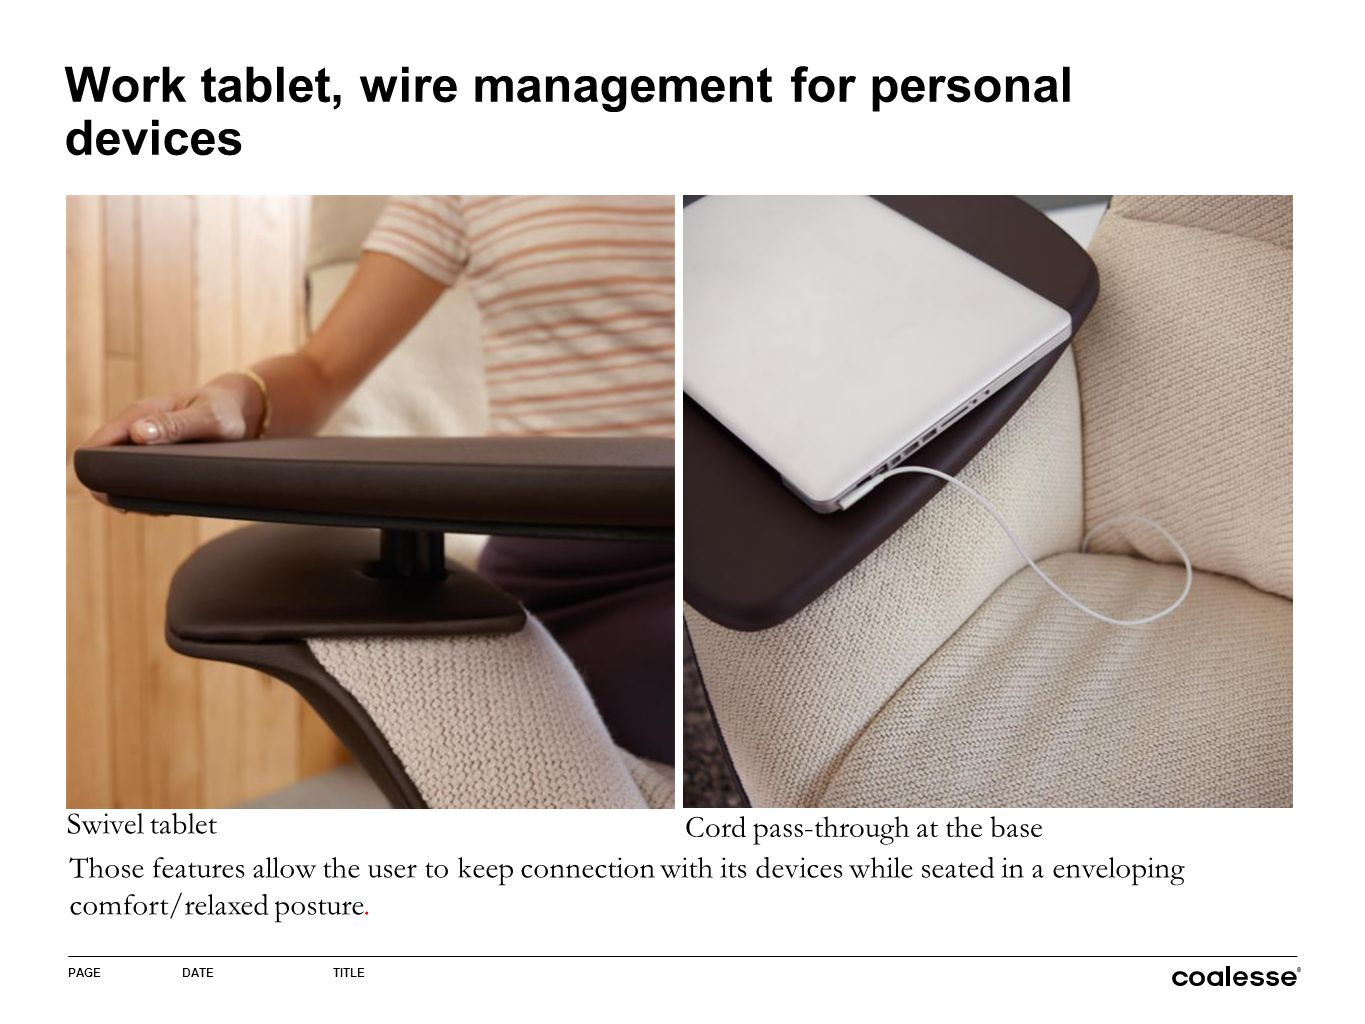 PAGEDATETITLE Work tablet, wire management for personal devices Swivel tablet Cord pass-through at the base Those features allow the user to keep connection with its devices while seated in a enveloping comfort/relaxed posture.